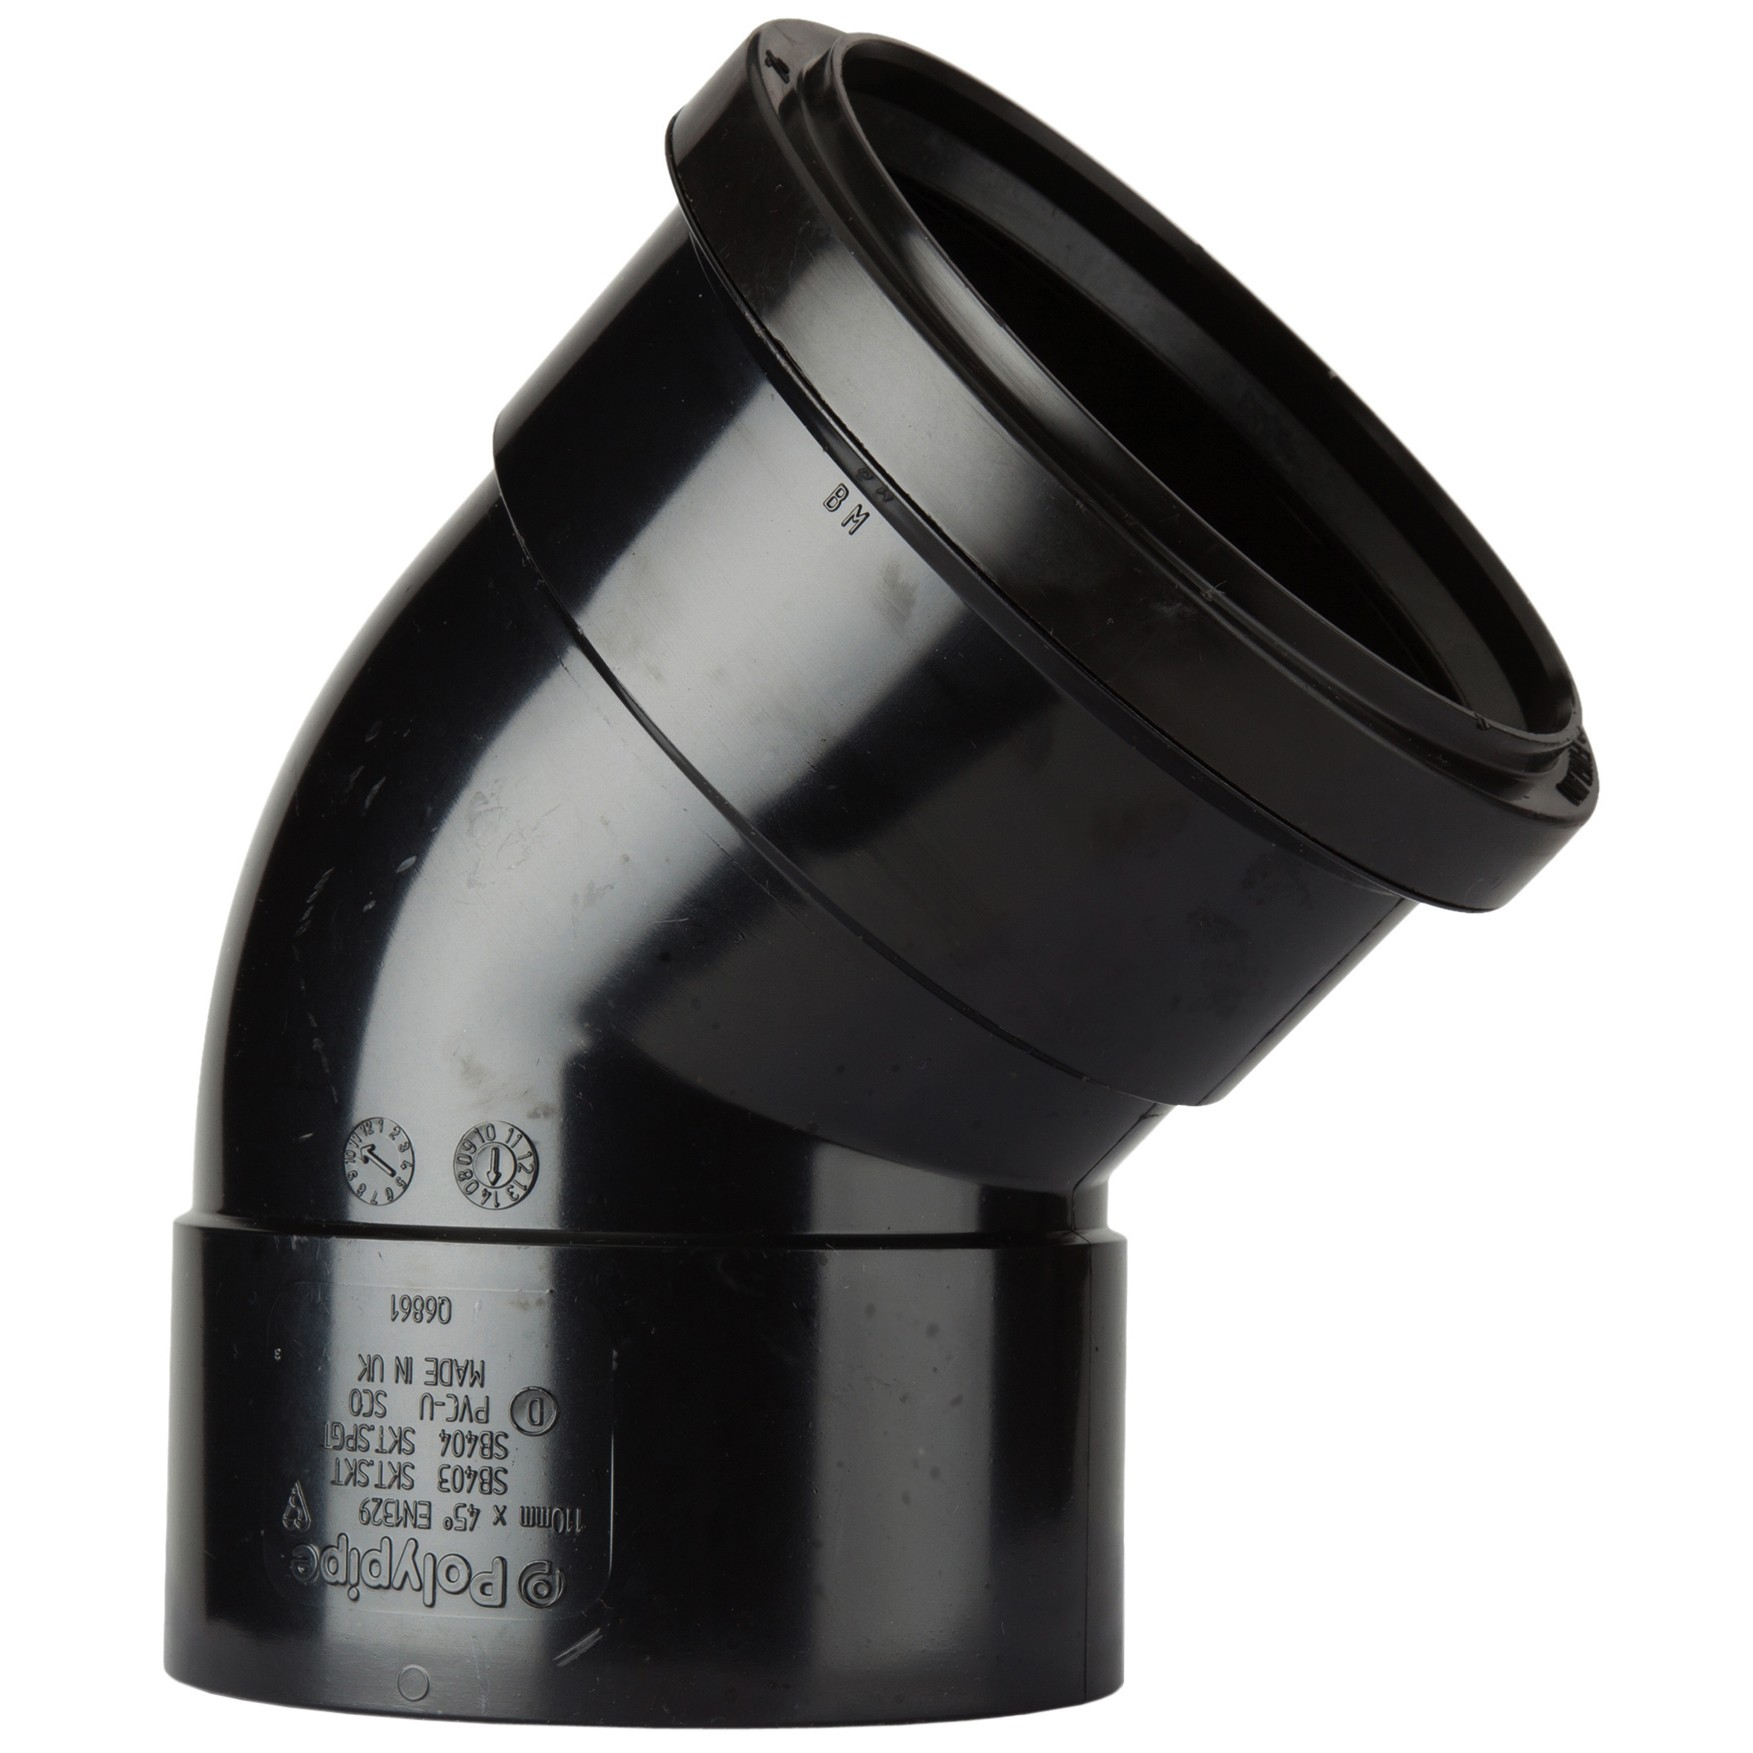 Polypipe 110mm Soil Double Socket 135 Degree Offset Bend - Black